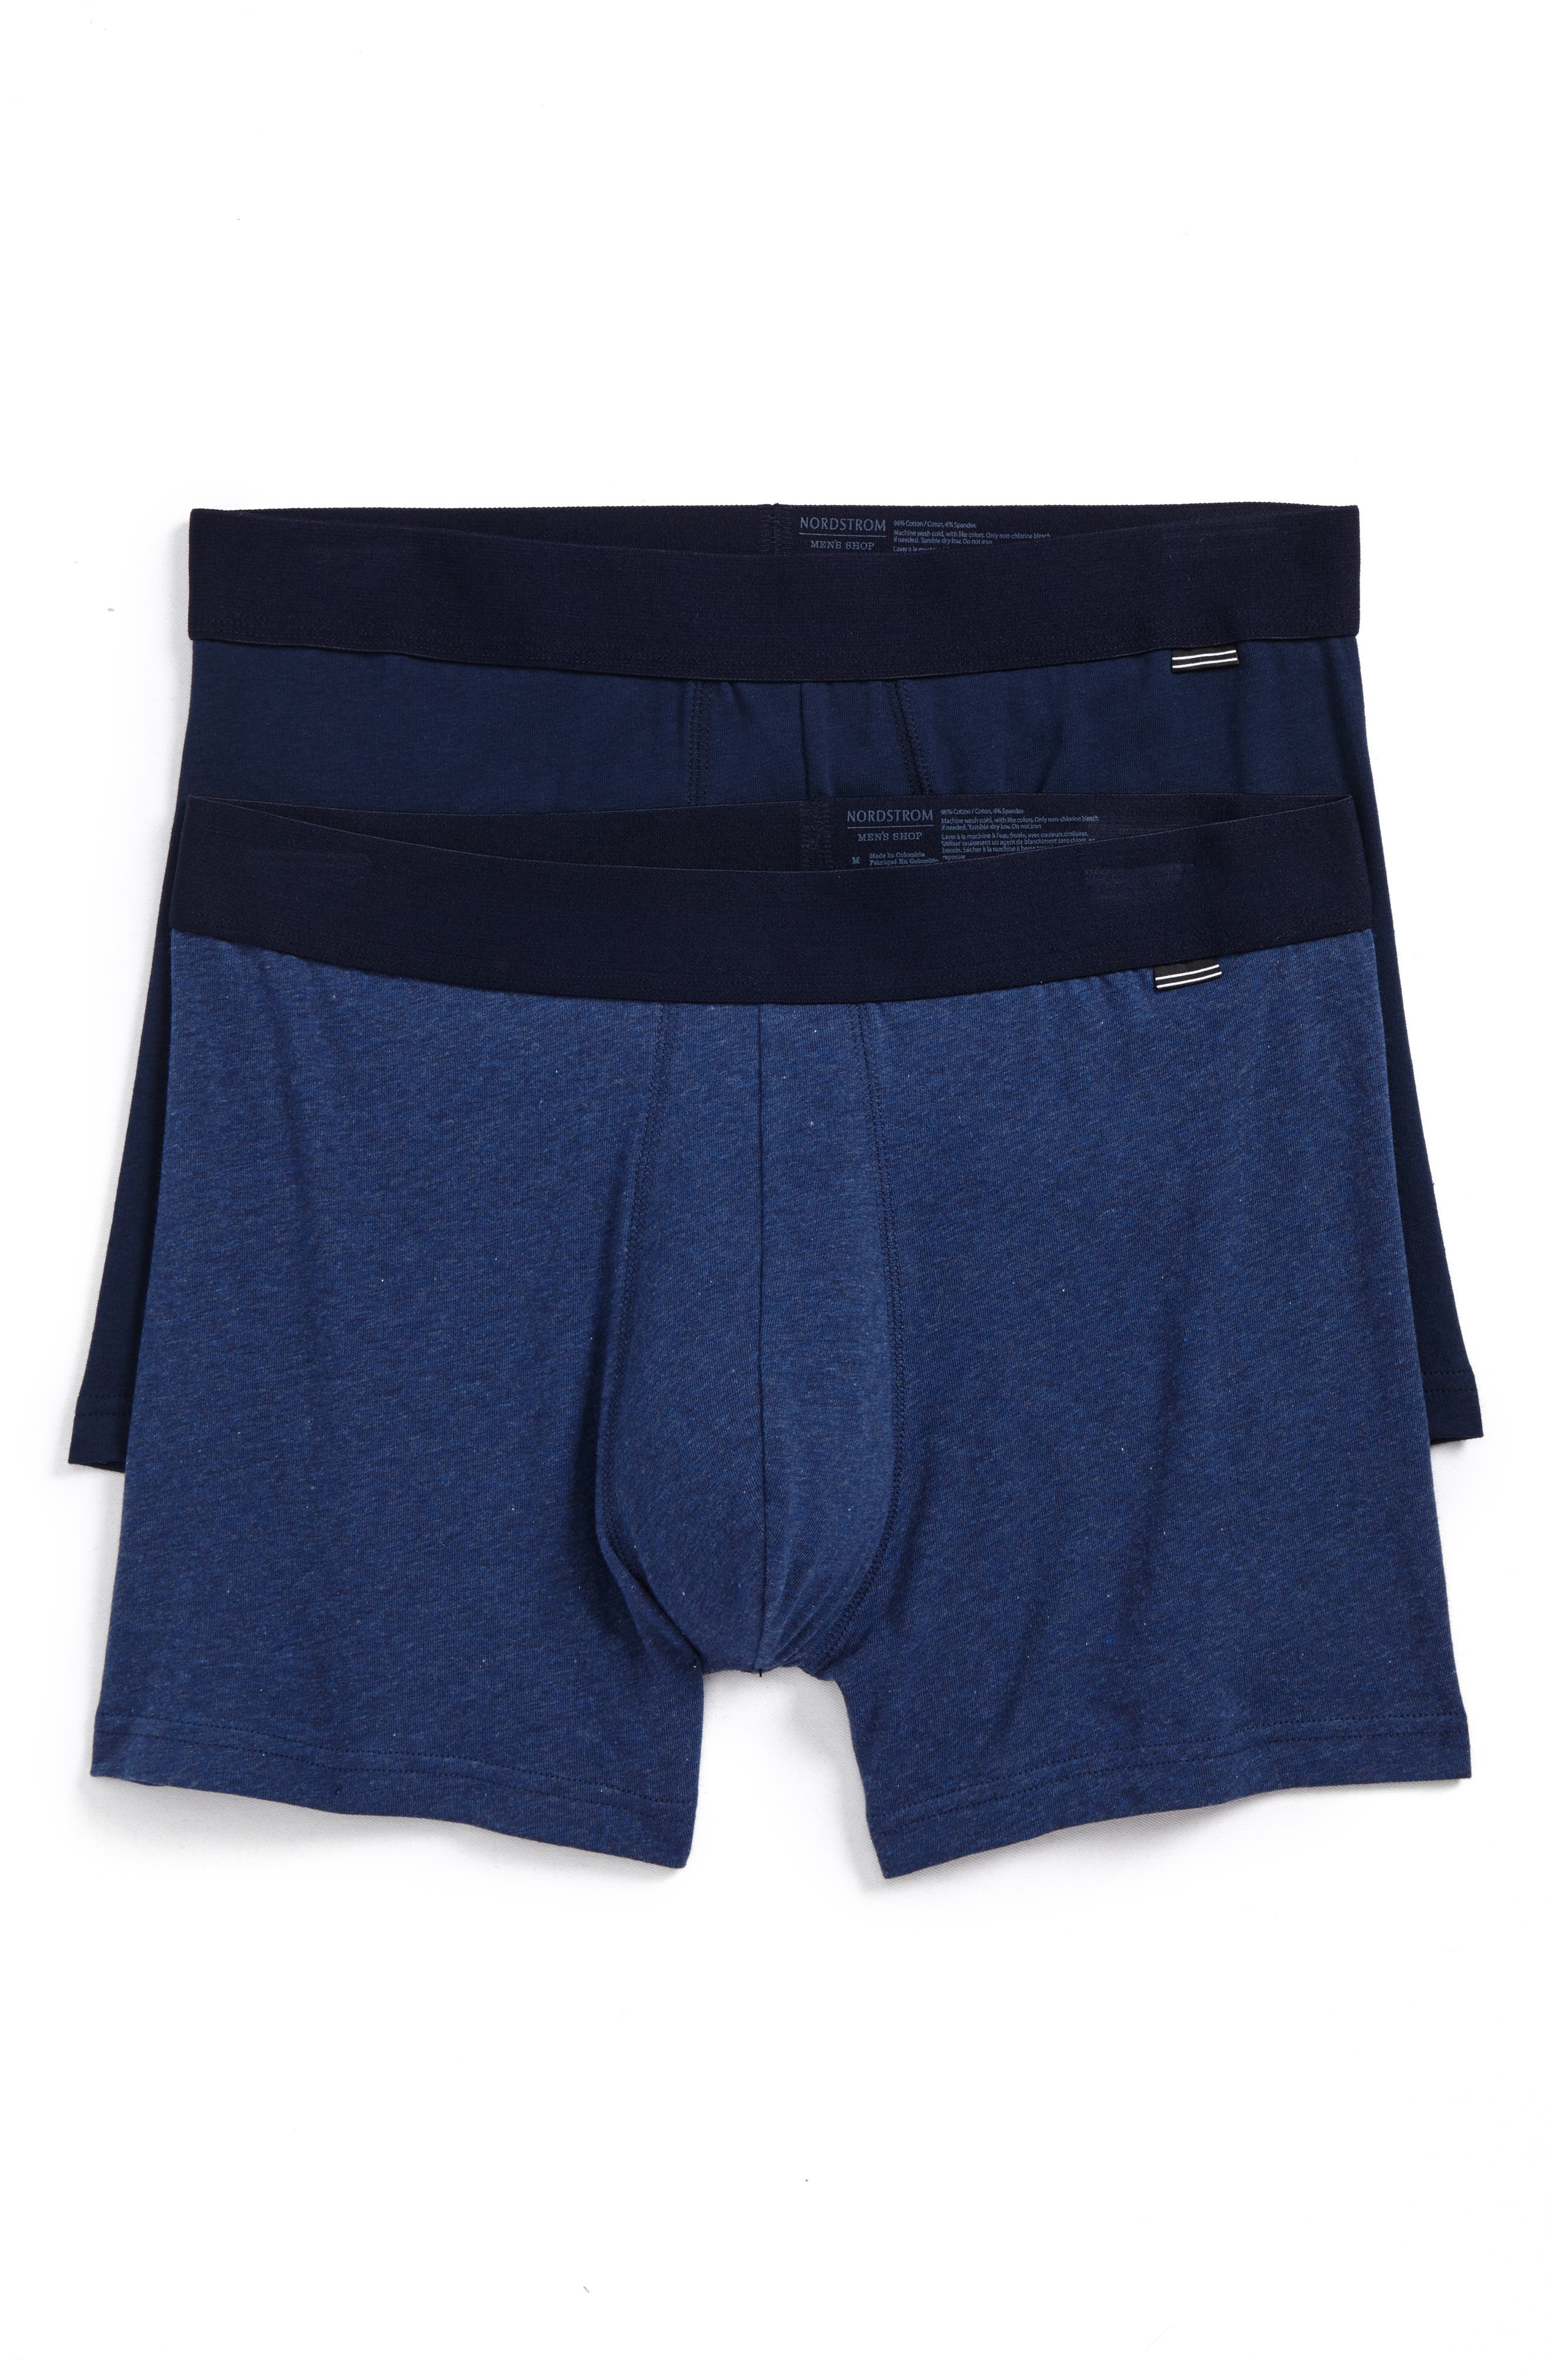 2-Pack Boxer Briefs,                         Main,                         color, Navy/ Navy Heather